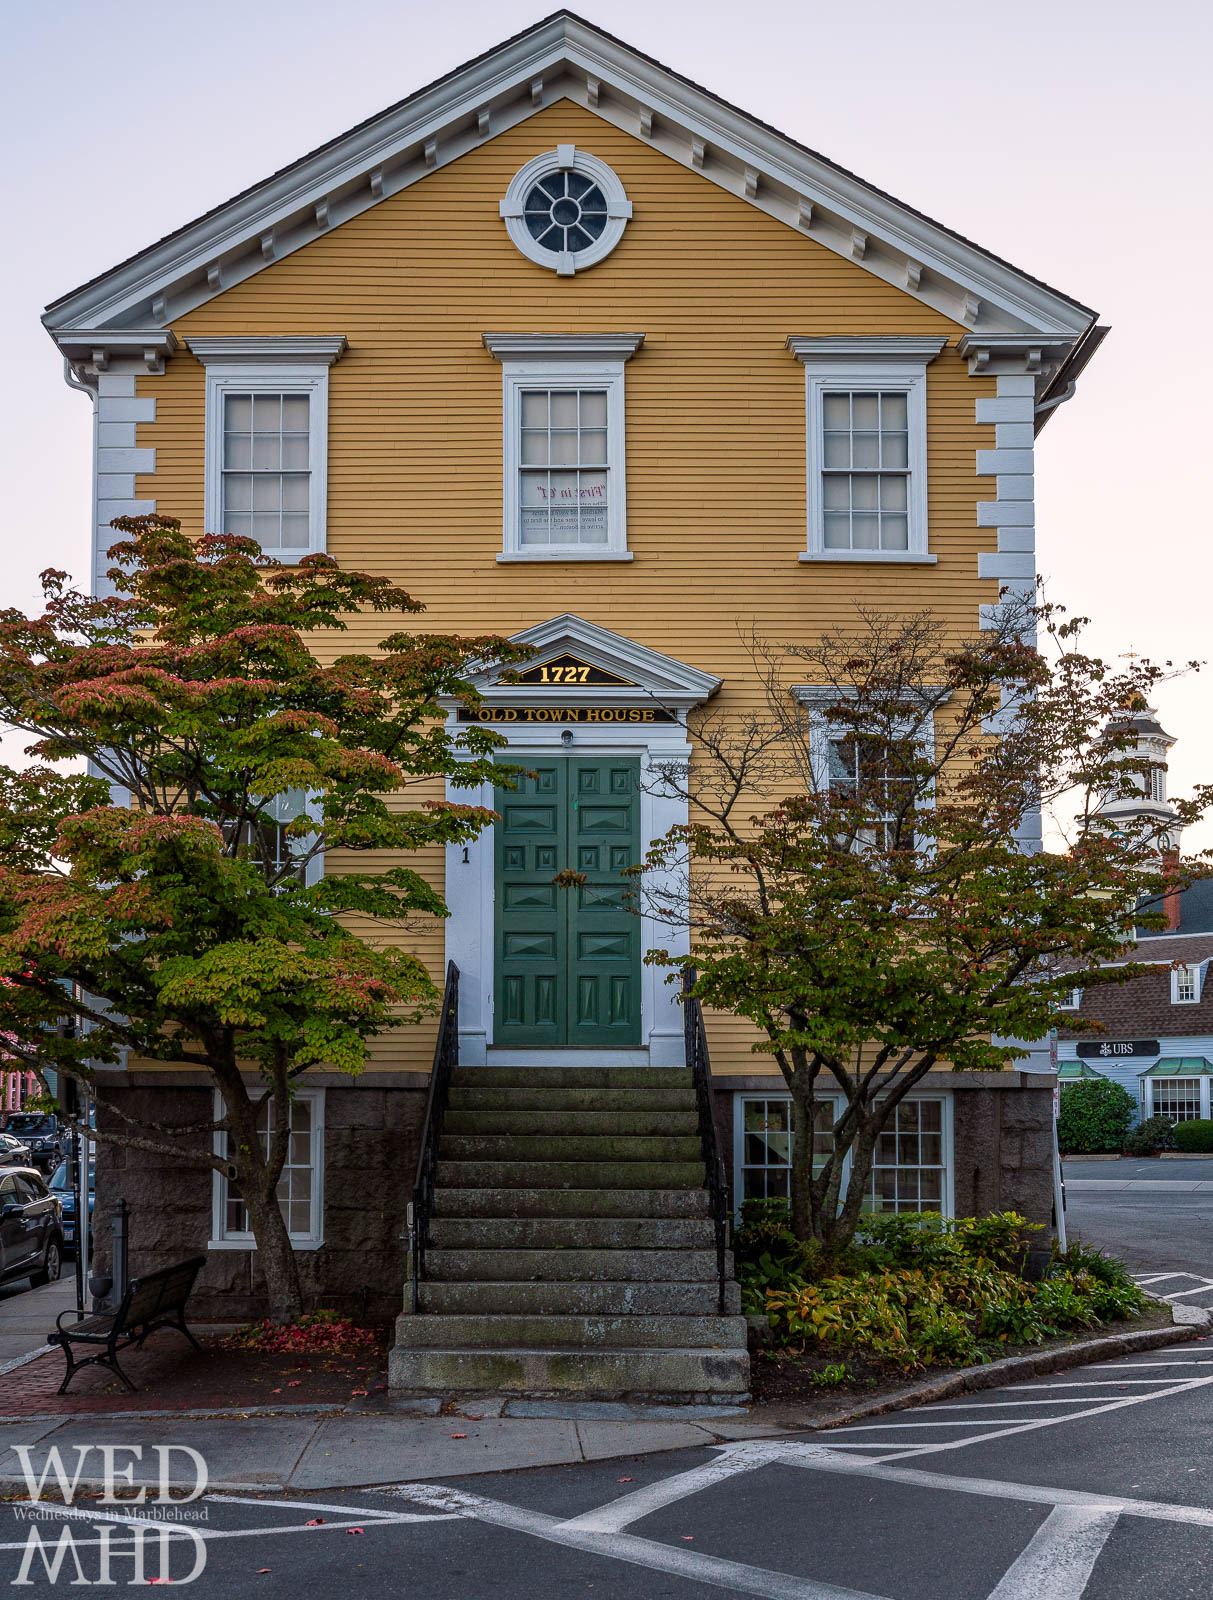 Trees in front of Old Town House begin to change color signaling the arrival of autumn in Marblehead